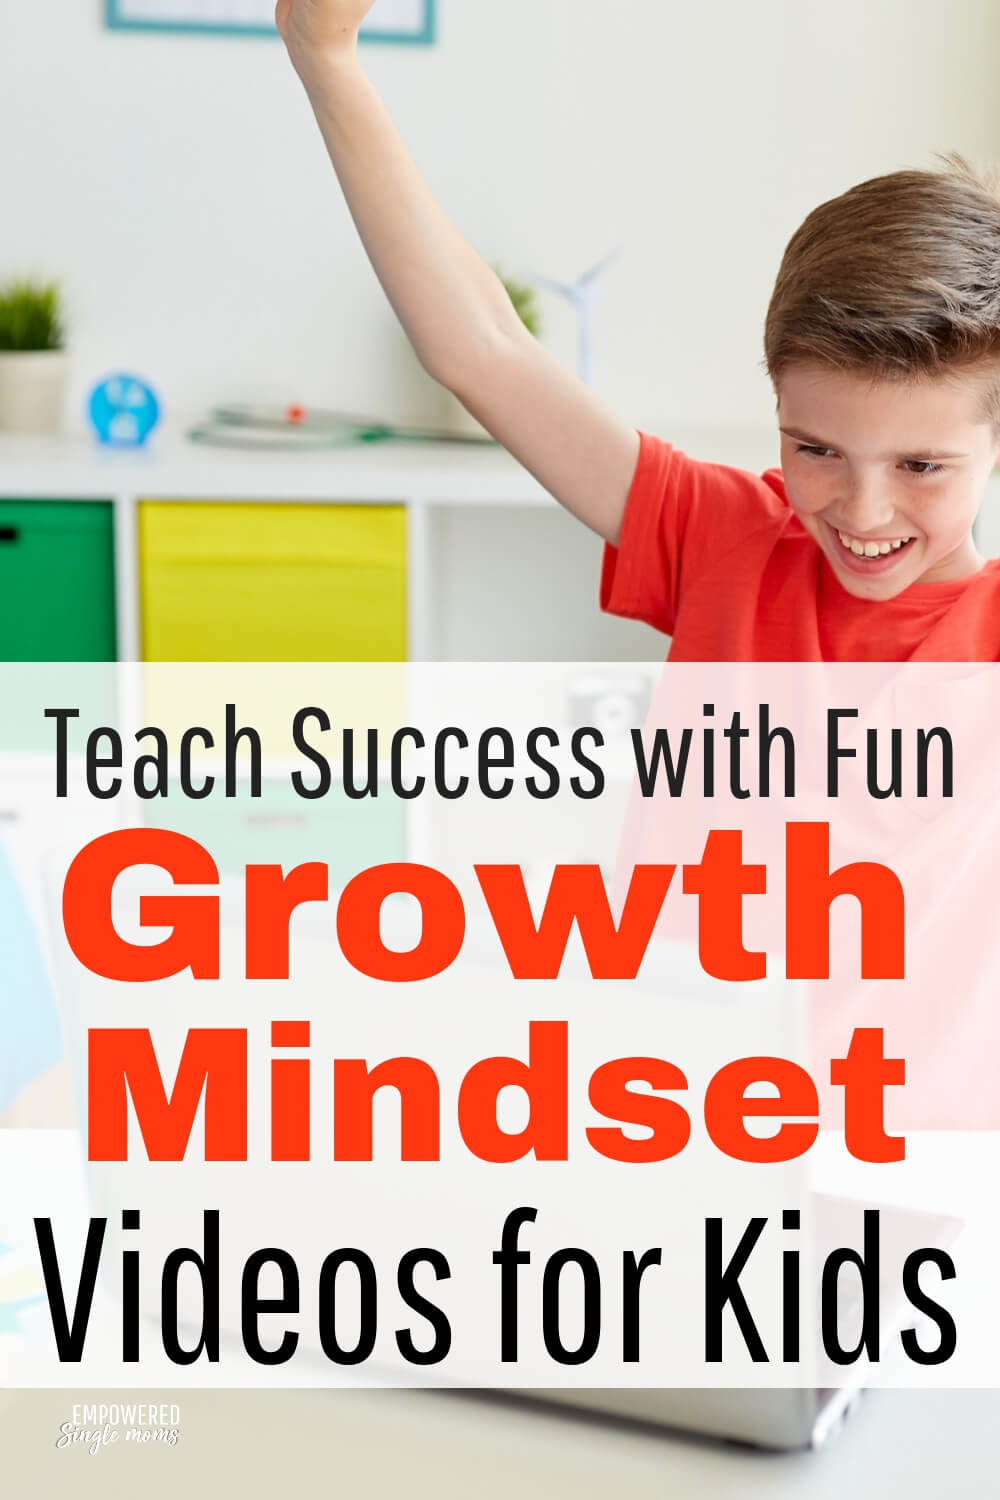 Fun YouTube videos to be successful by learning a growth mindset for preschoolers, middle school kids, teenagers and even adults